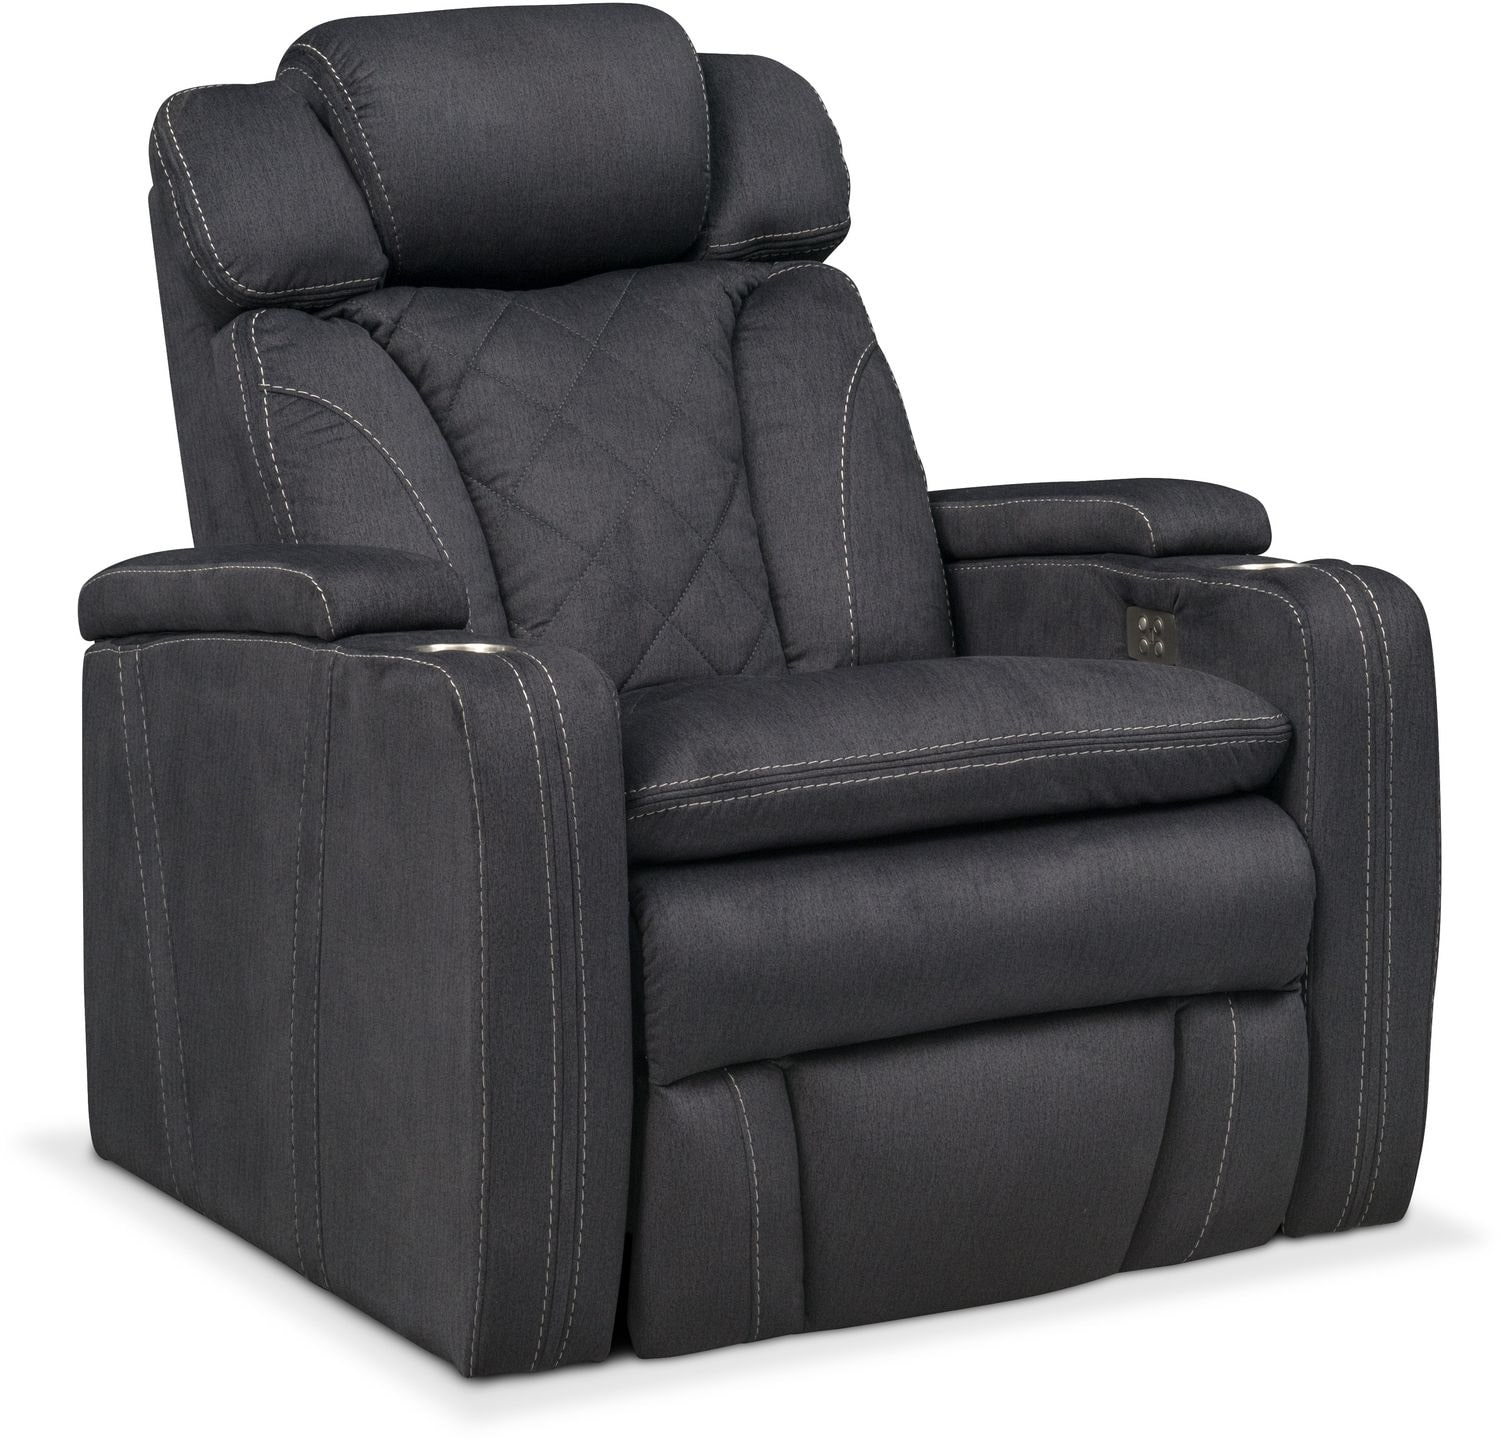 Fiero Power Recliner - Charcoal  sc 1 st  American Signature Furniture & Recliners u0026 Rockers | Living Room Seating | American Signature ... islam-shia.org